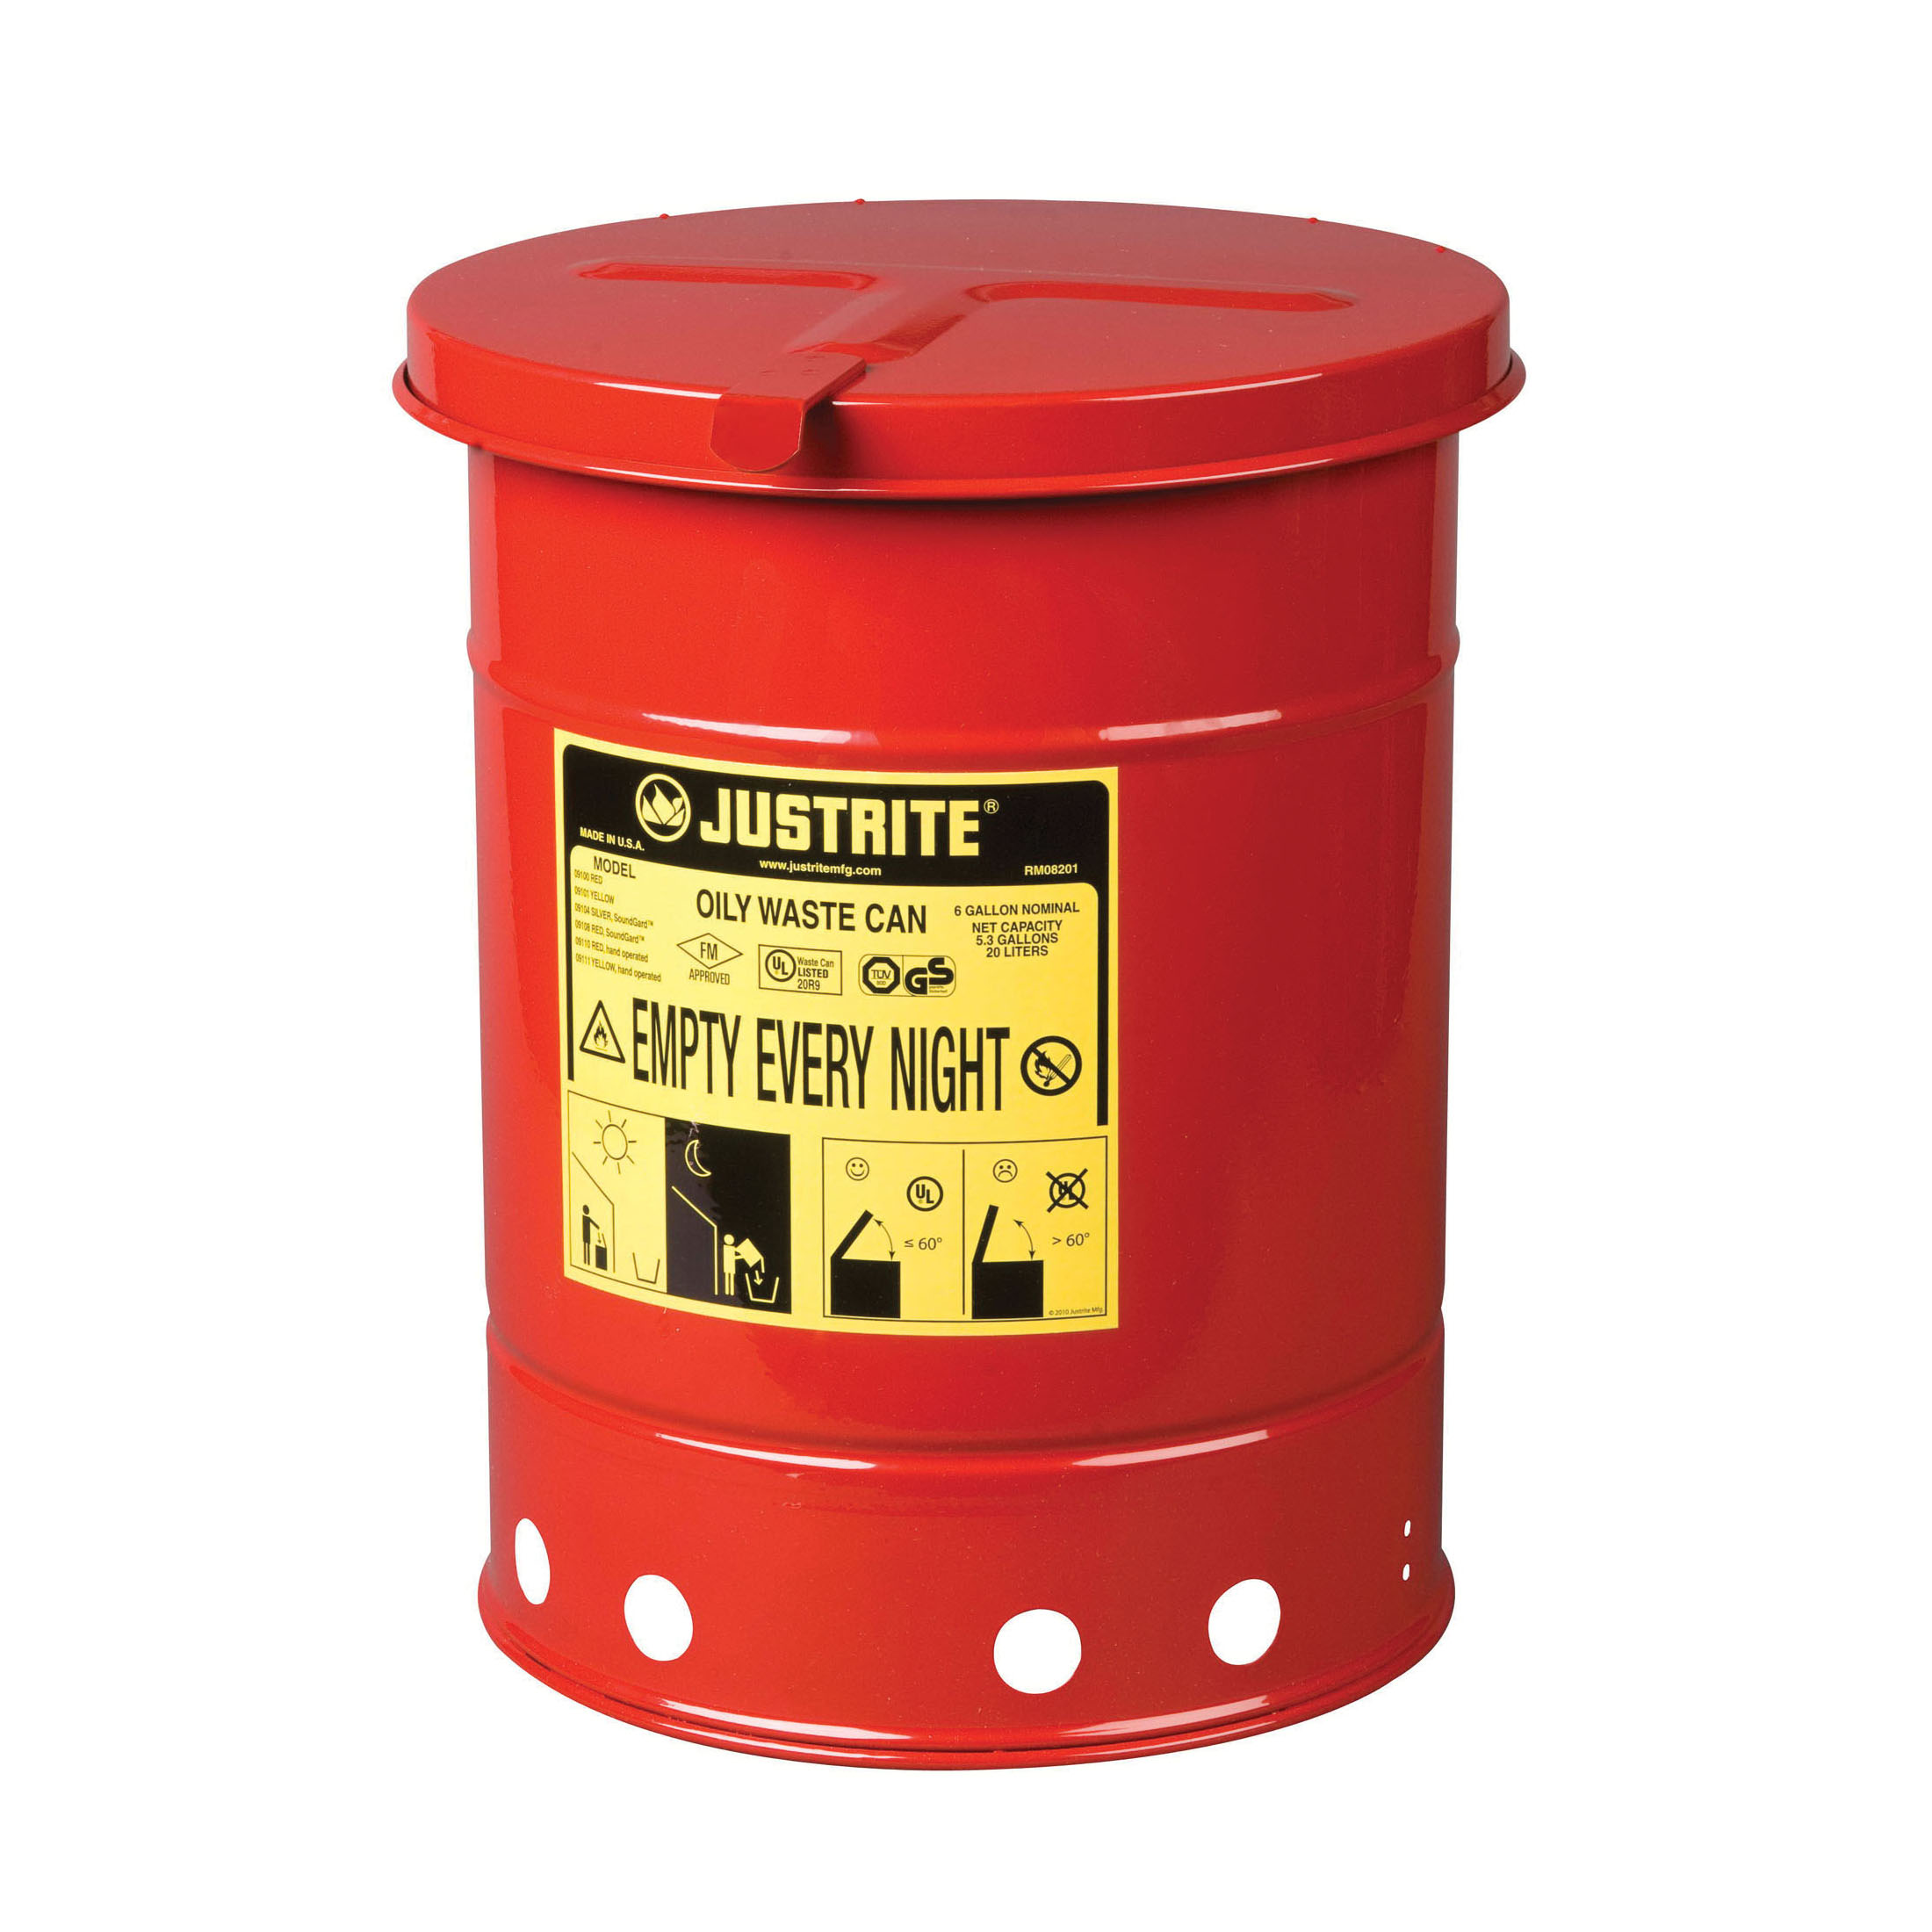 Justrite® 09110 Hand Operated Oily Waste Can, 6 gal Capacity, 11-7/8 in Dia x 15-7/8 in H, Steel, Red